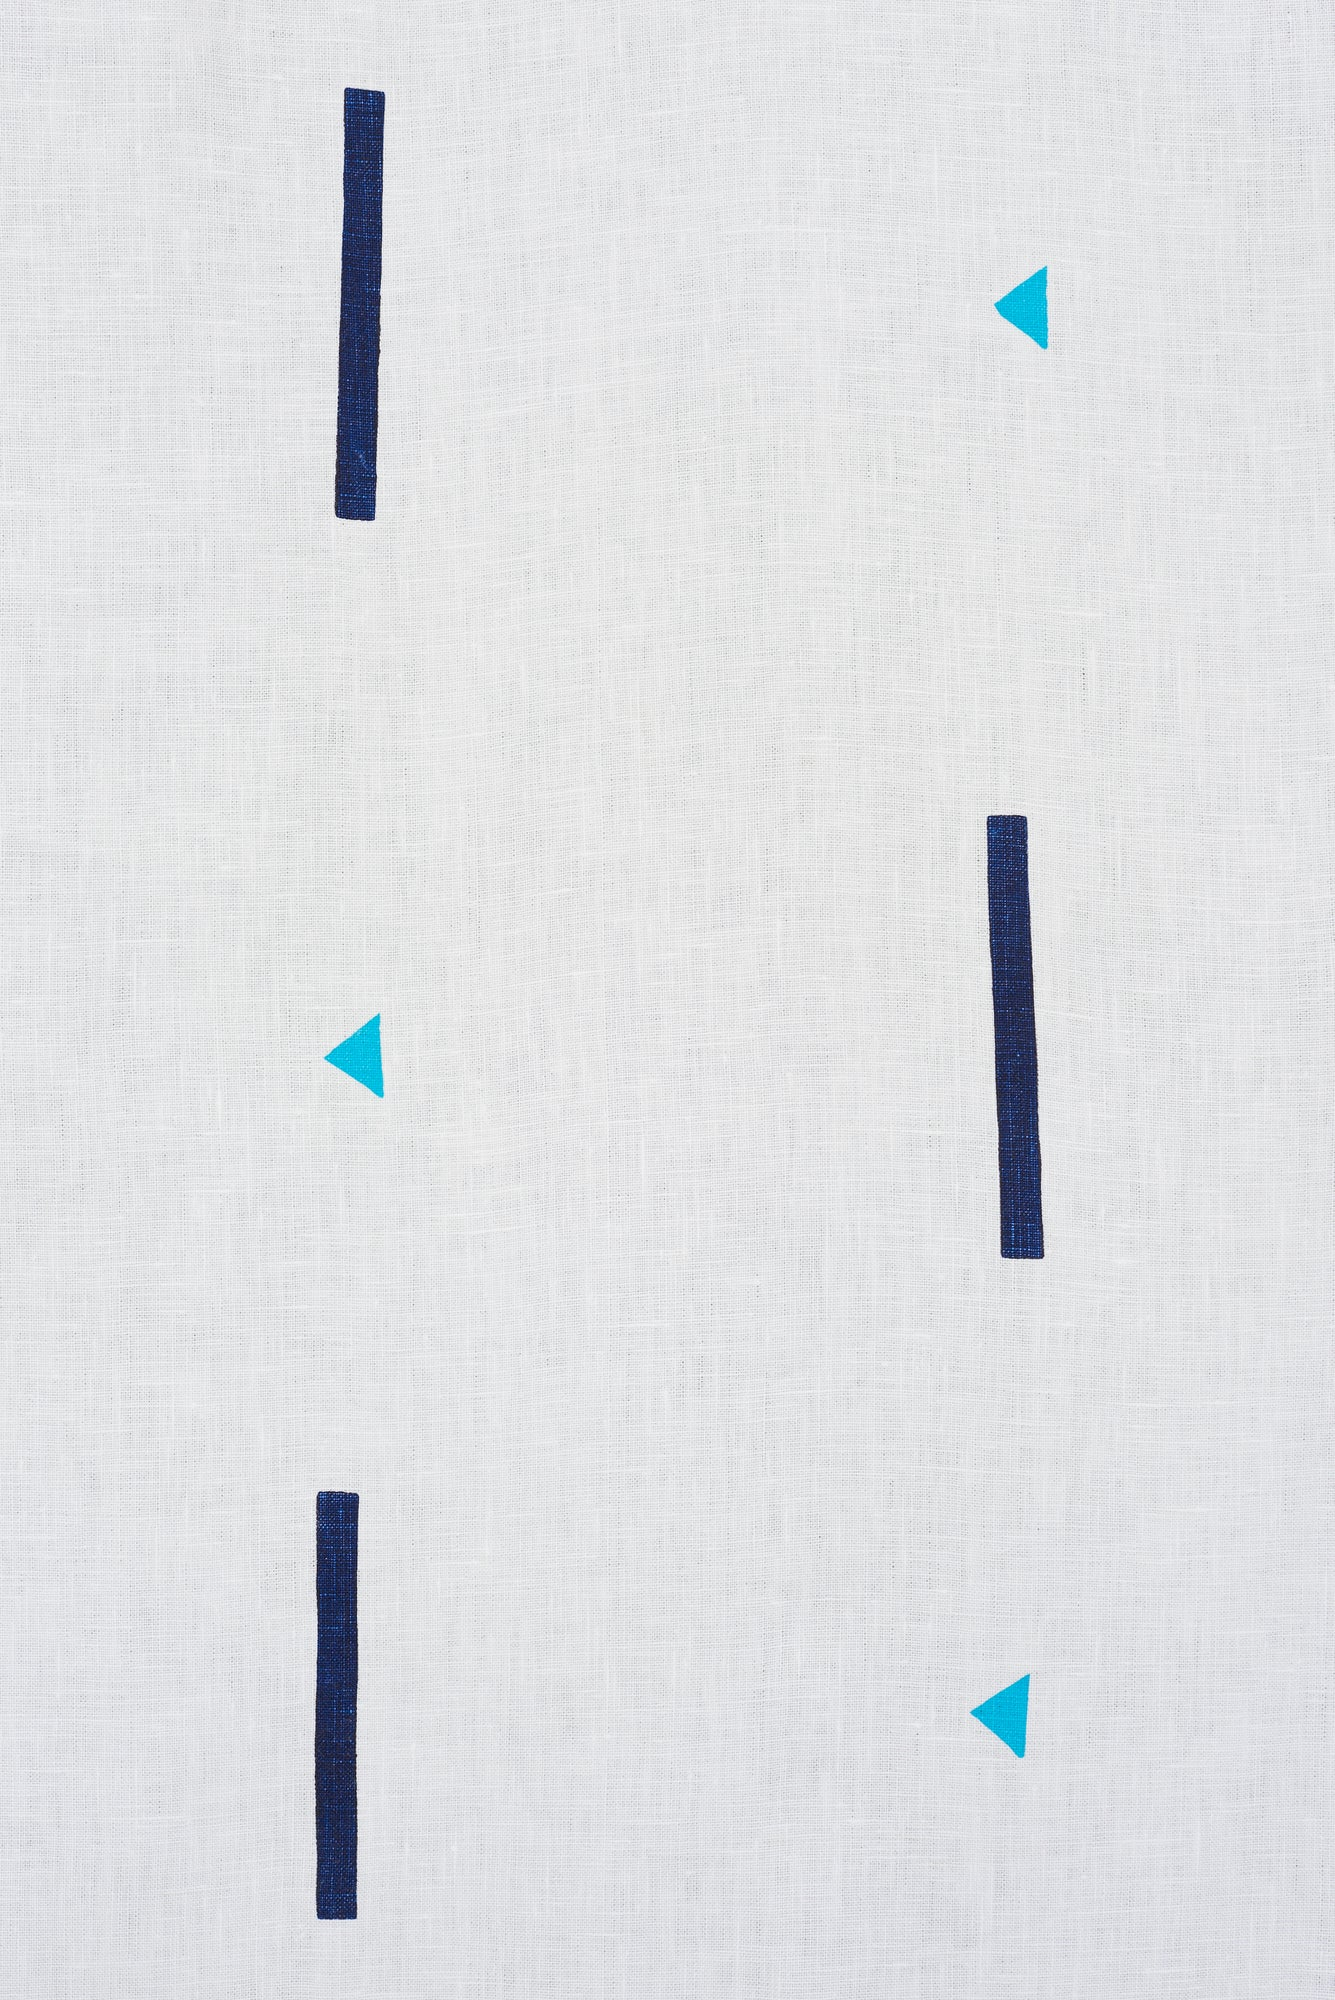 Tashmoo Turquoise & Navy - Fabric By The Yard